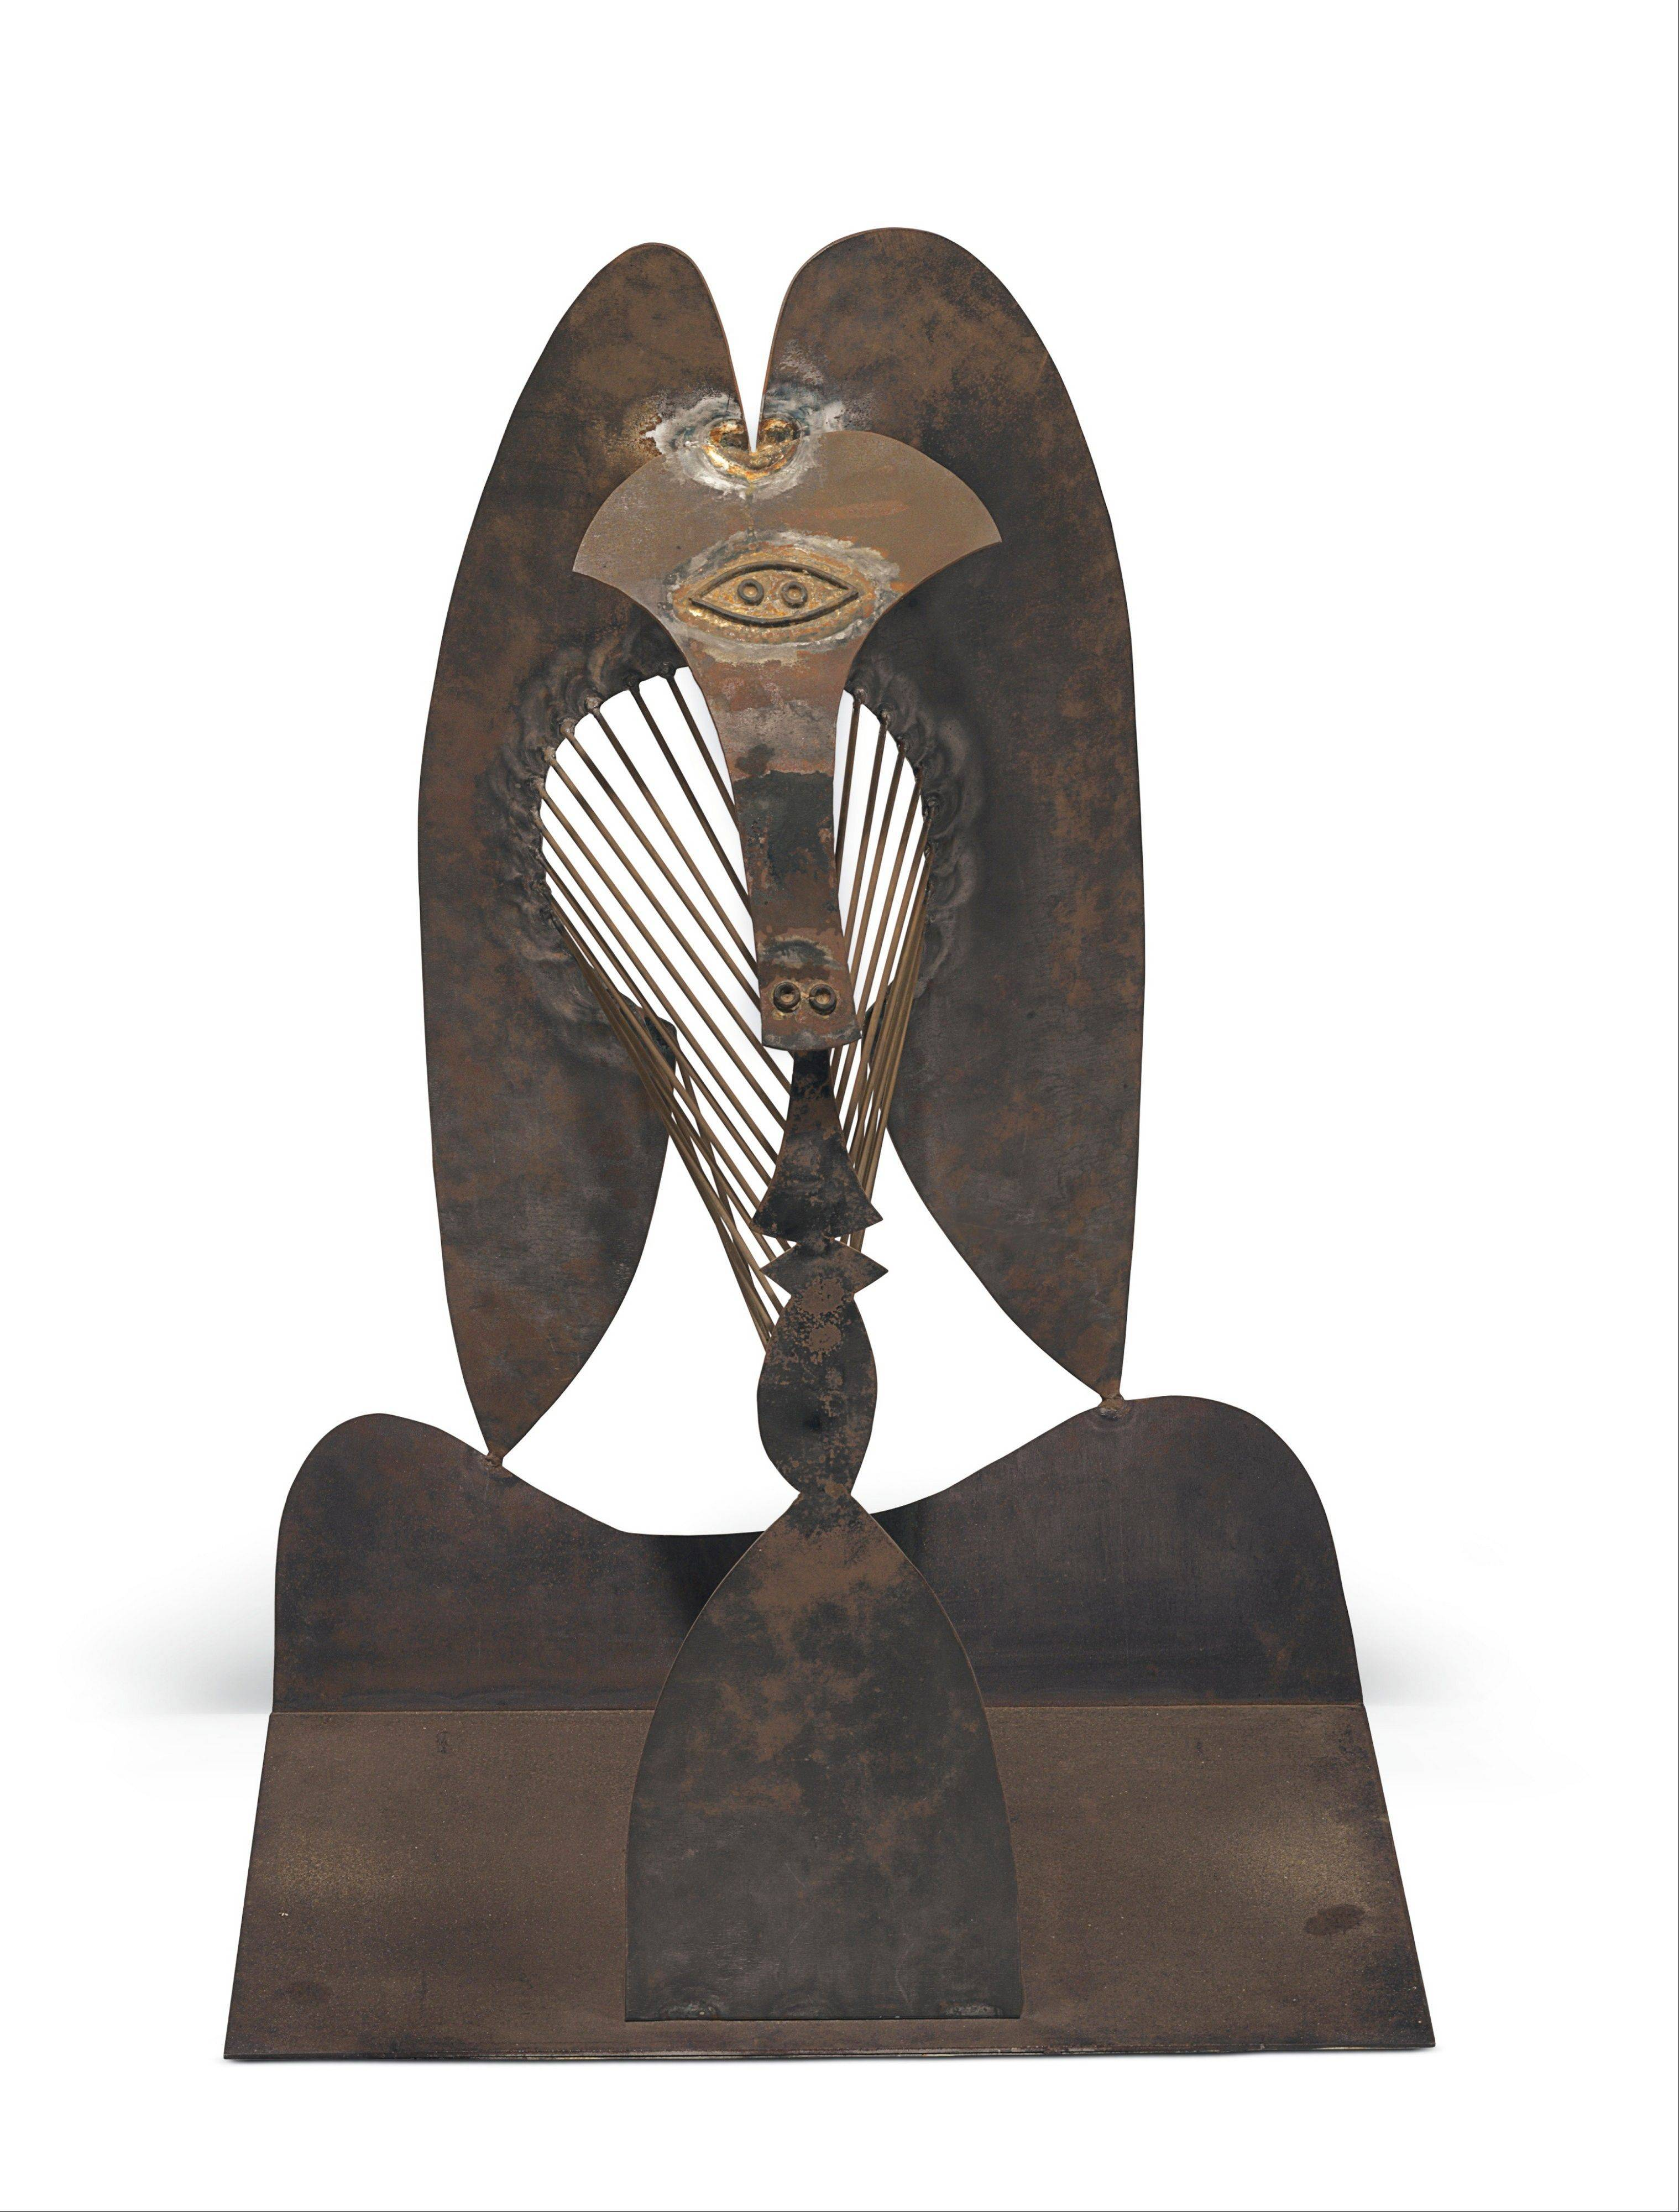 "This 2013 photo provided by Christie's Images Ltd. shows a model of Pablo Picasso's famed Chicago sculpture named ""Tete,"" that will be auctioned next month. Christie's estimates it will sell for between $25 million and $35 million."